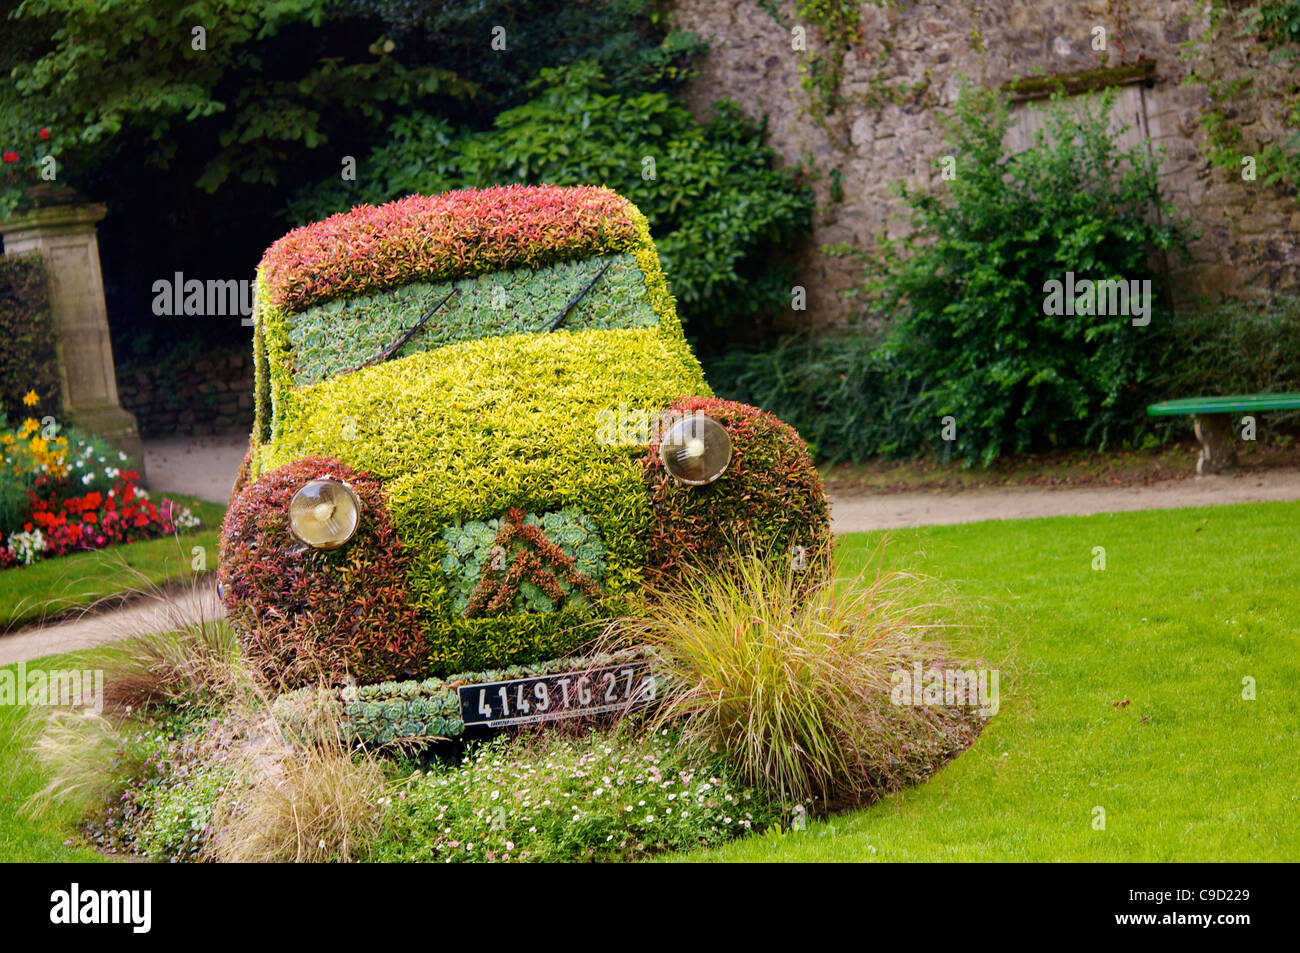 A Flower Bed In The Shape Of An Old Citroen 2cv At The Botanical ...